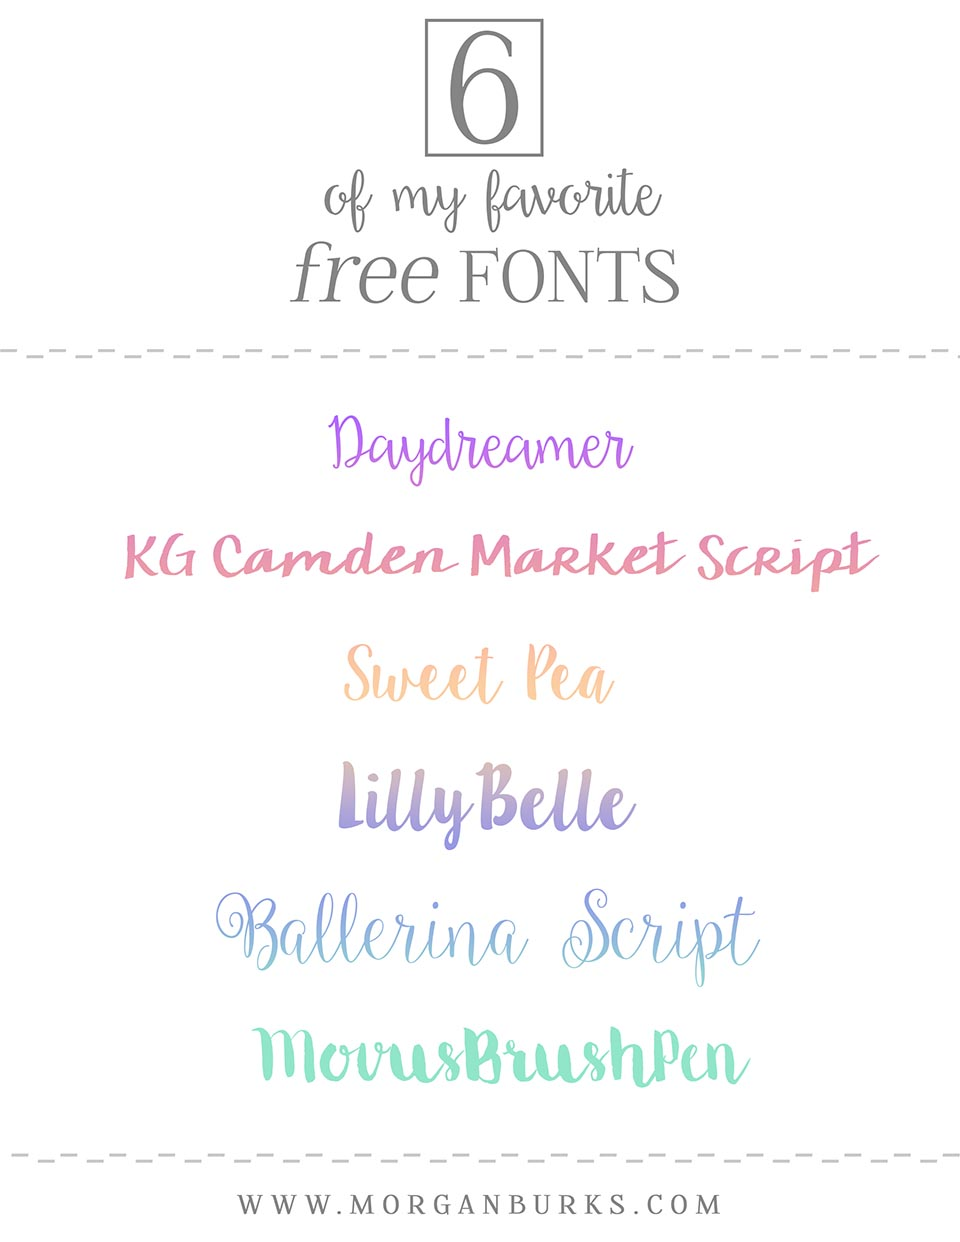 6 of my favorite free fonts! Whether you use them for branding, graphics, or if you're just a font hoarder like me, you can never have enough fonts!